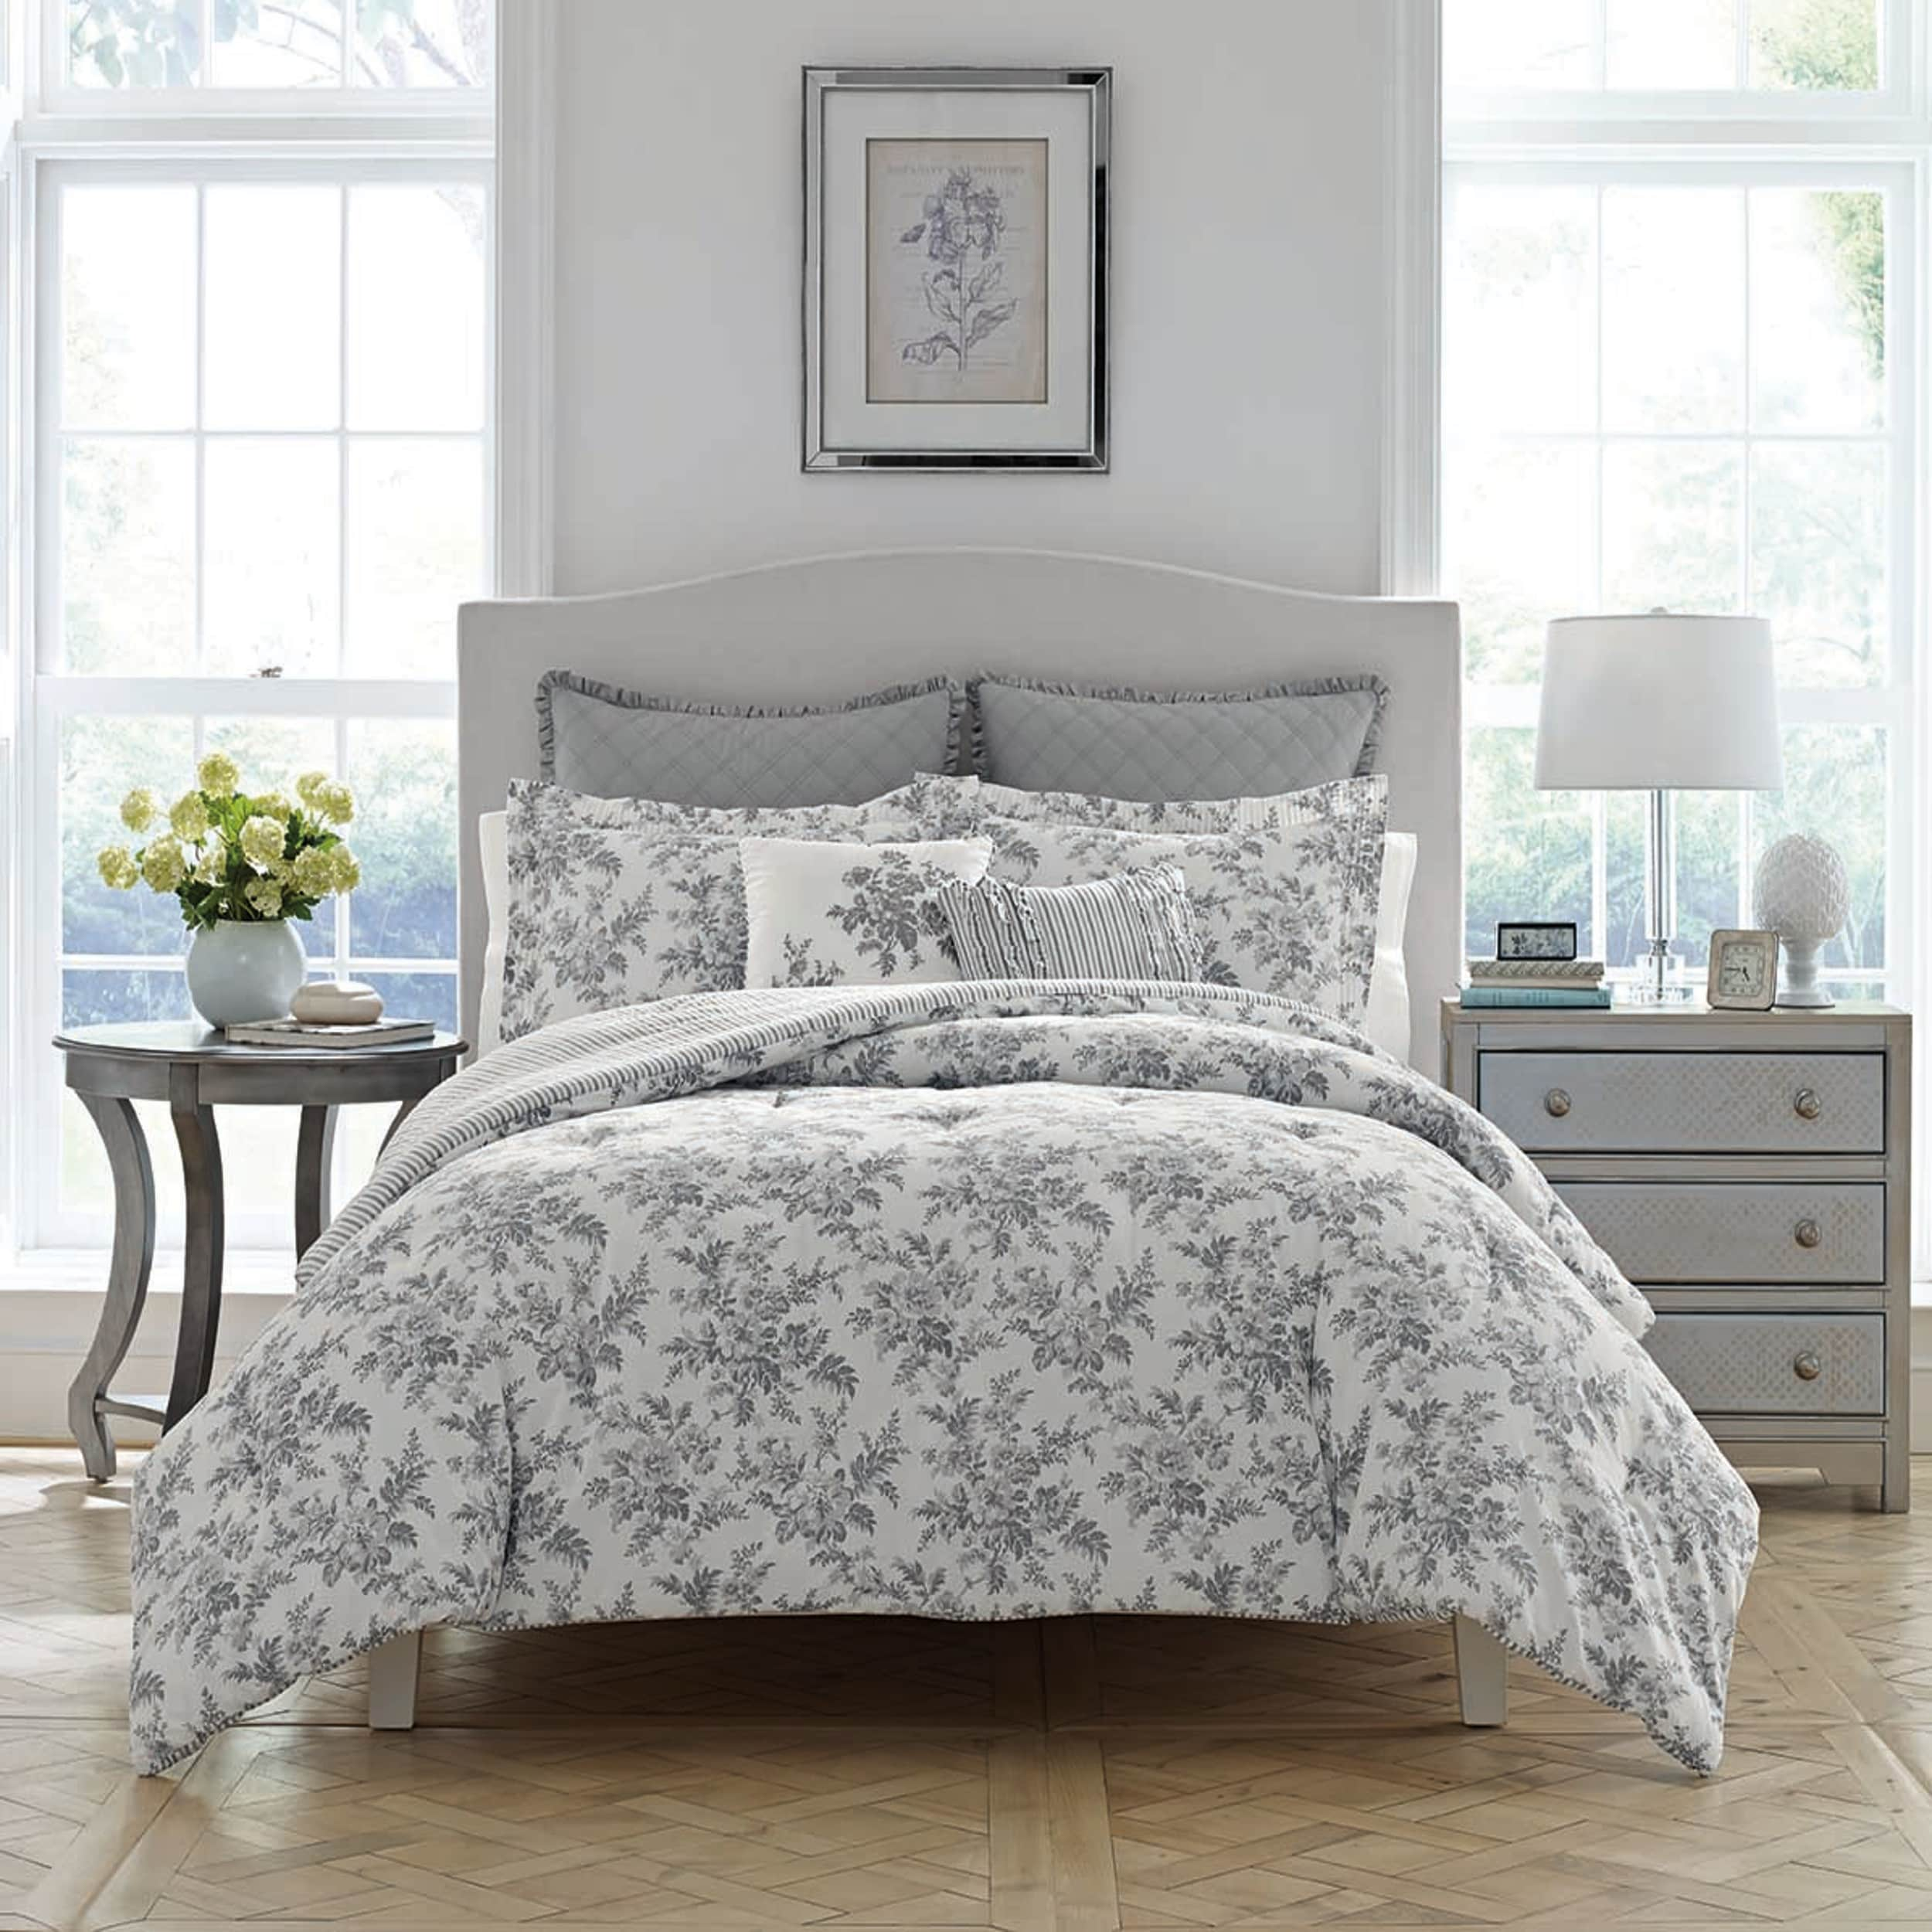 Swell Laura Ashley Annalise 7 Piece Bed In A Bag Set Download Free Architecture Designs Scobabritishbridgeorg